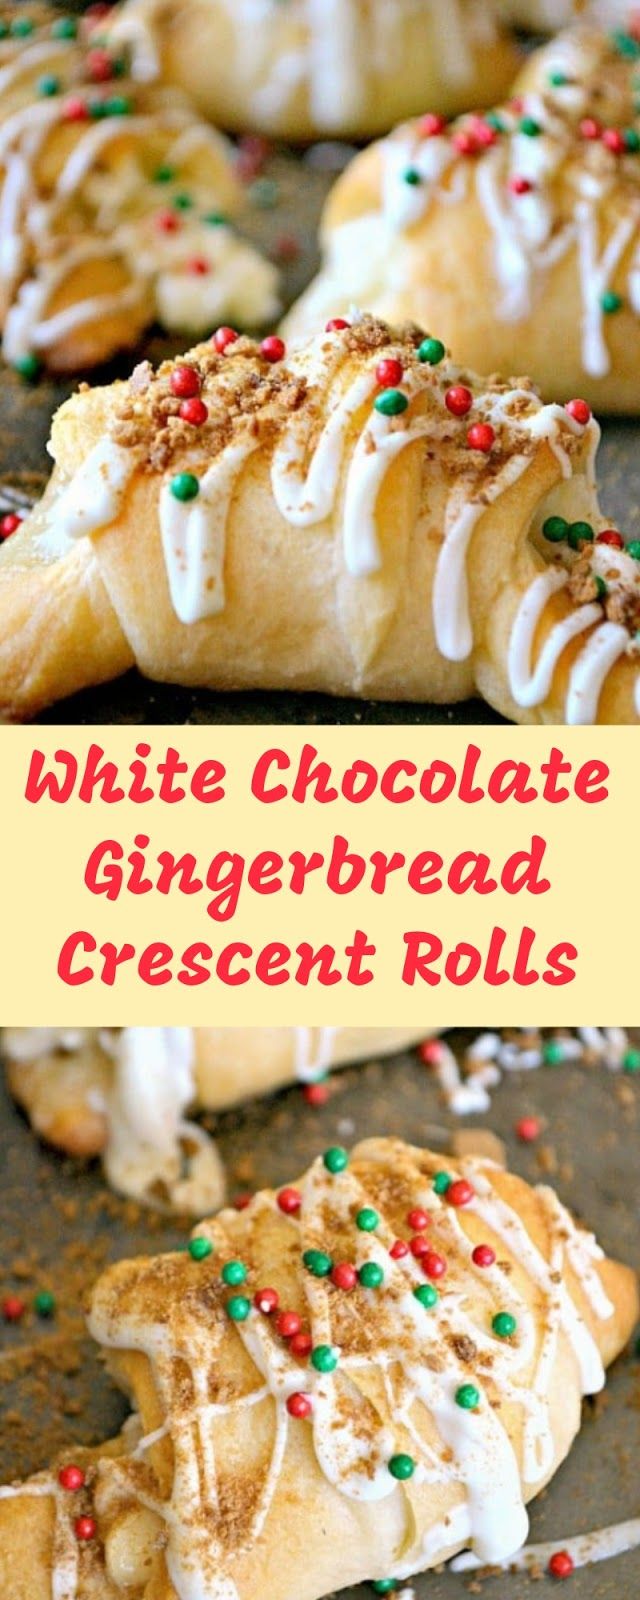 White Chocolate Gingerbread Crescent Rolls